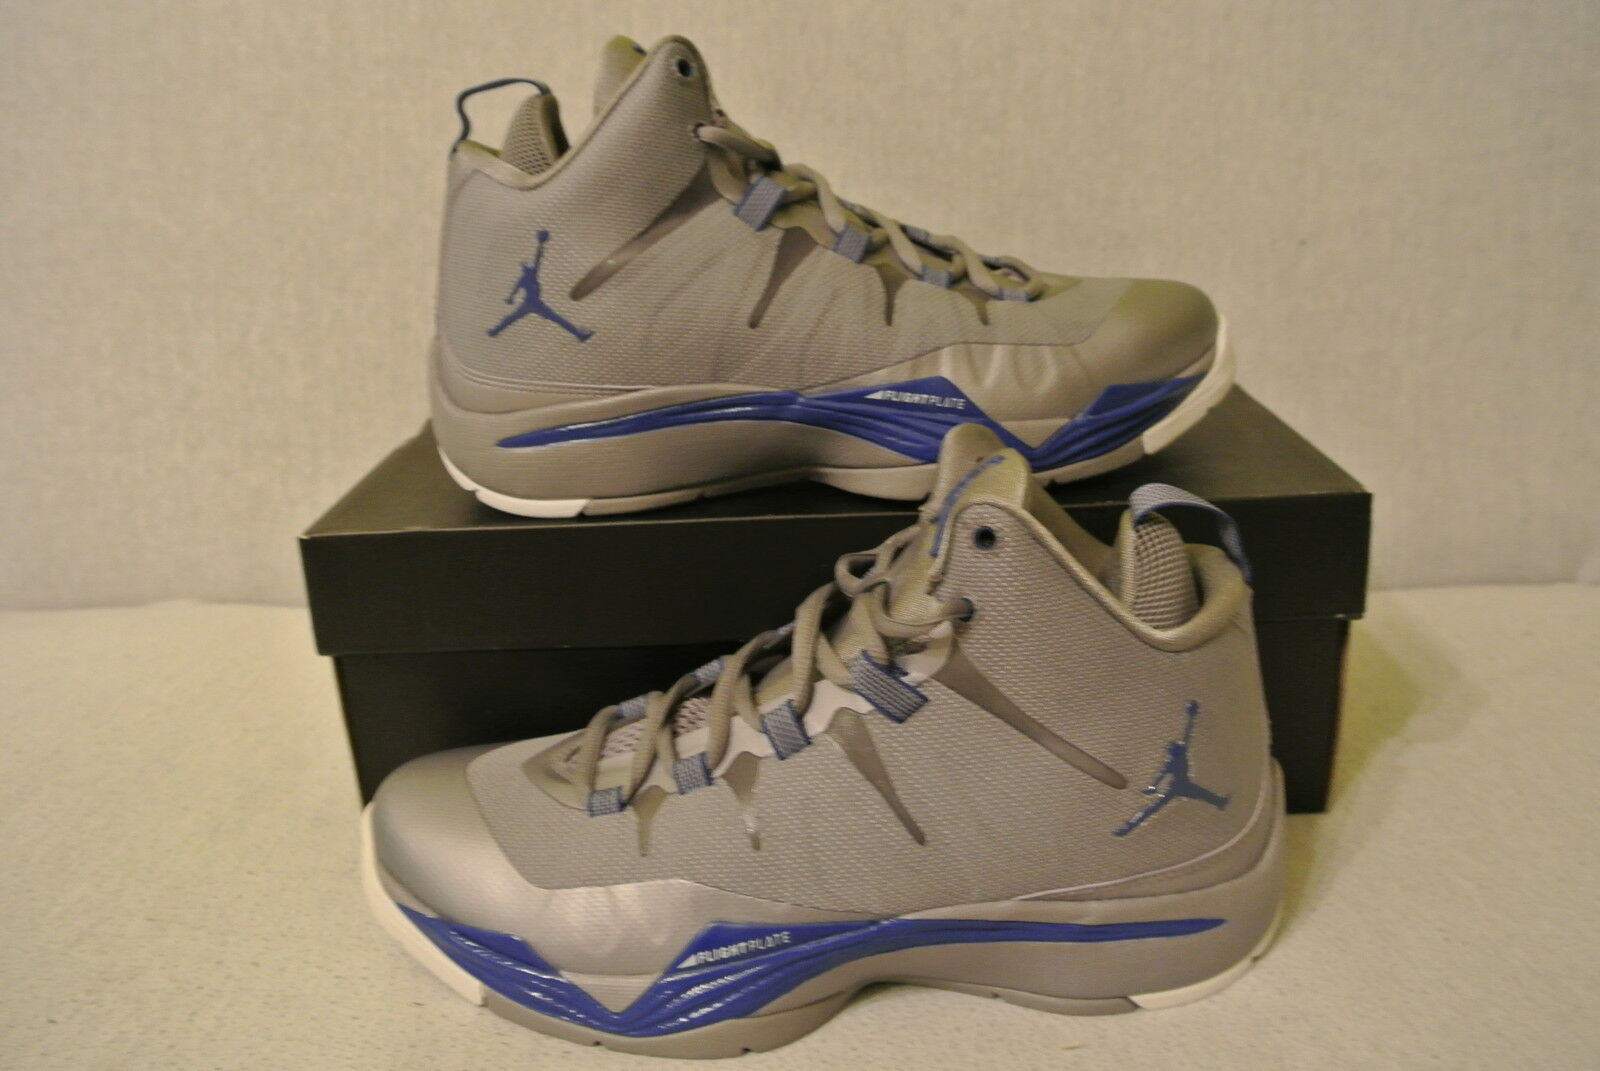 Nike Air Jordan super. fly 2 us 9 nuevo & OVP 599945 007